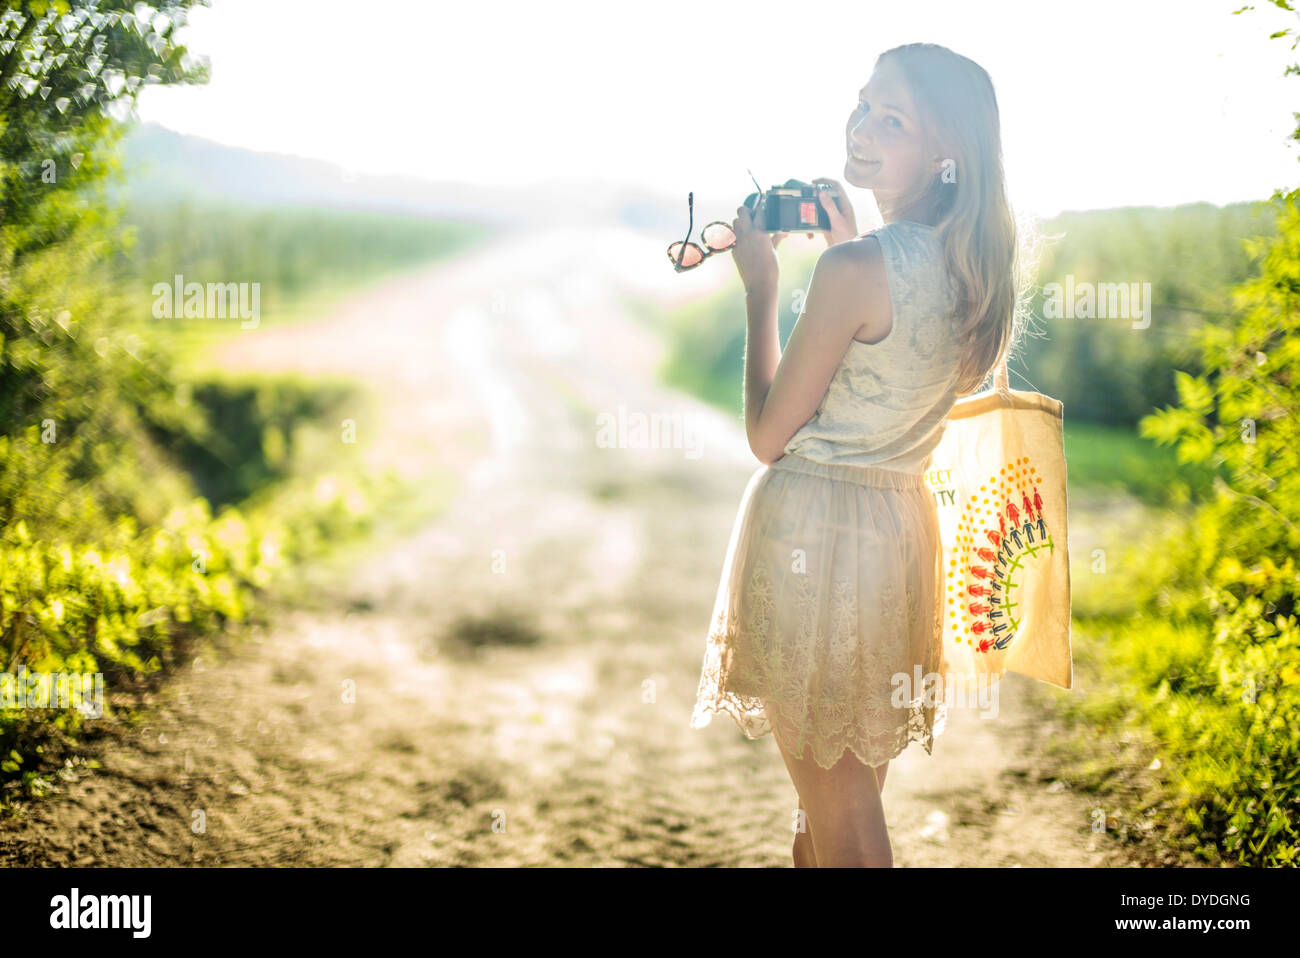 A young girl with a film camera. - Stock Image